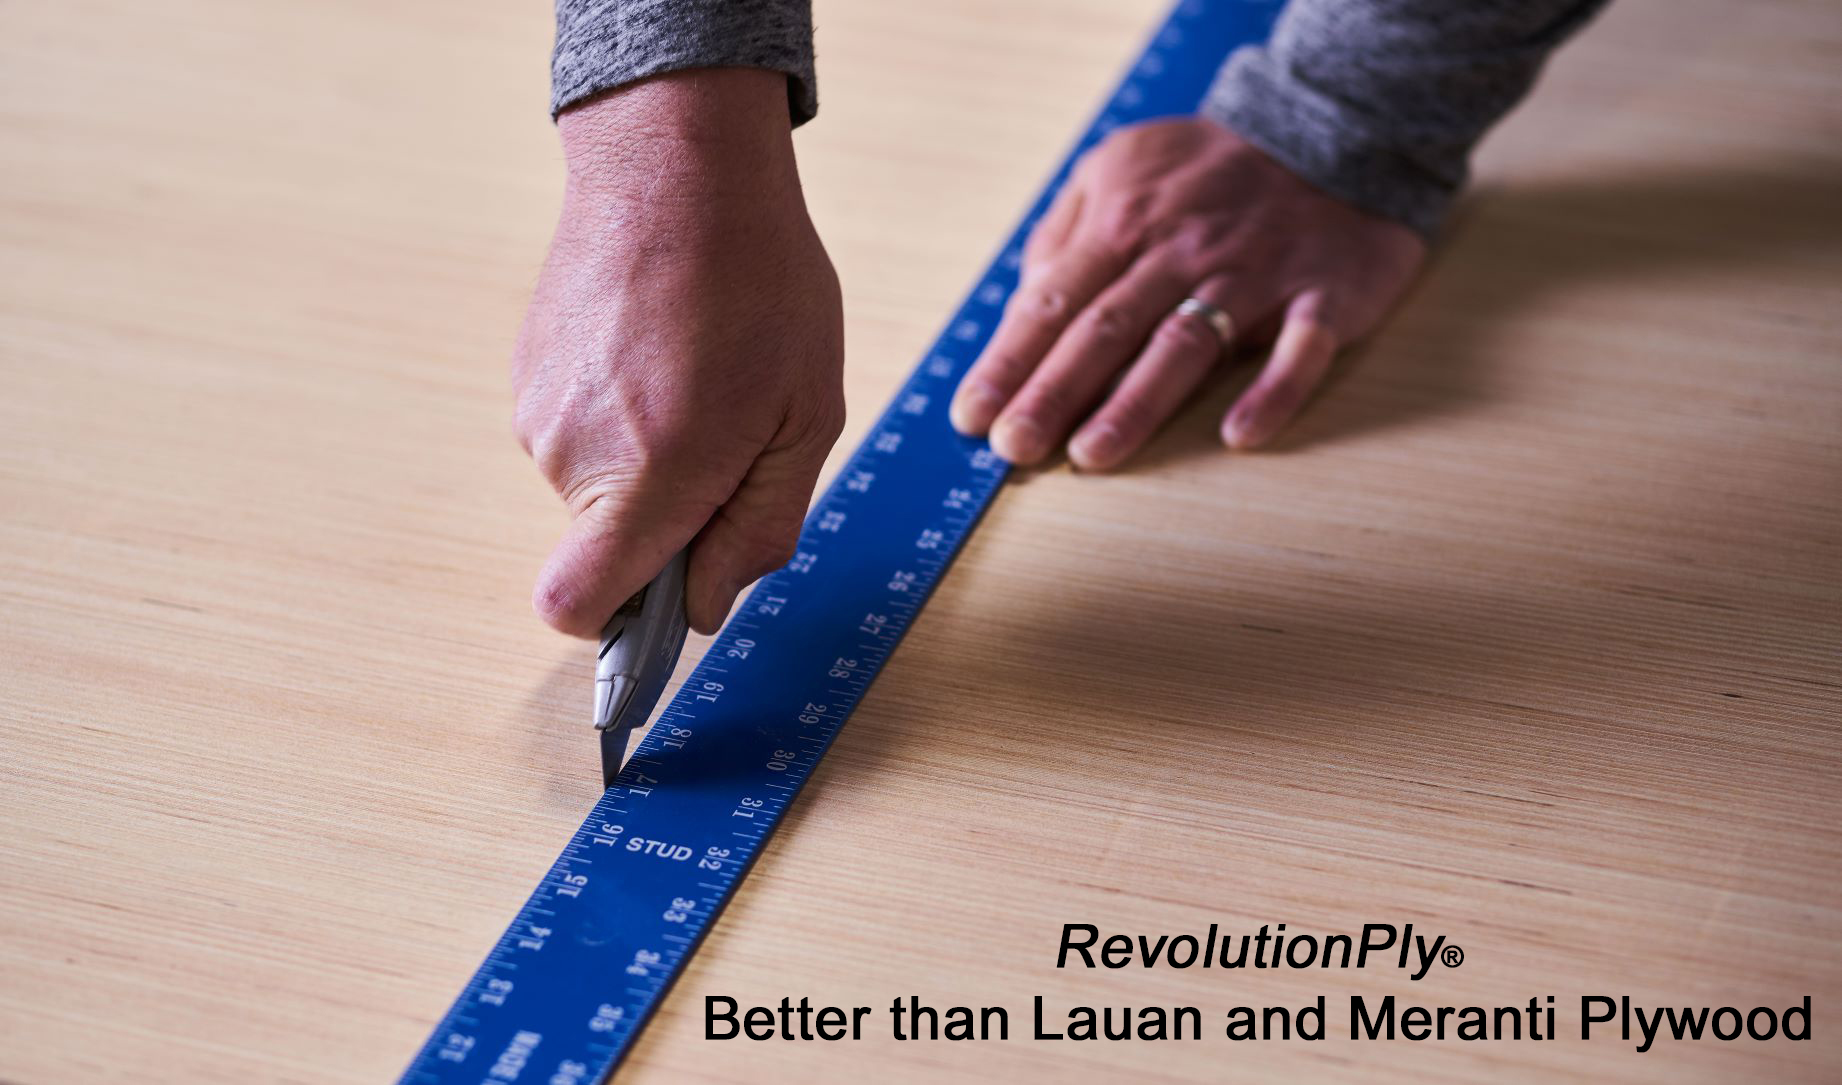 RevolutionPly® Plywood - Better than Lauan (Meranti) Plywood